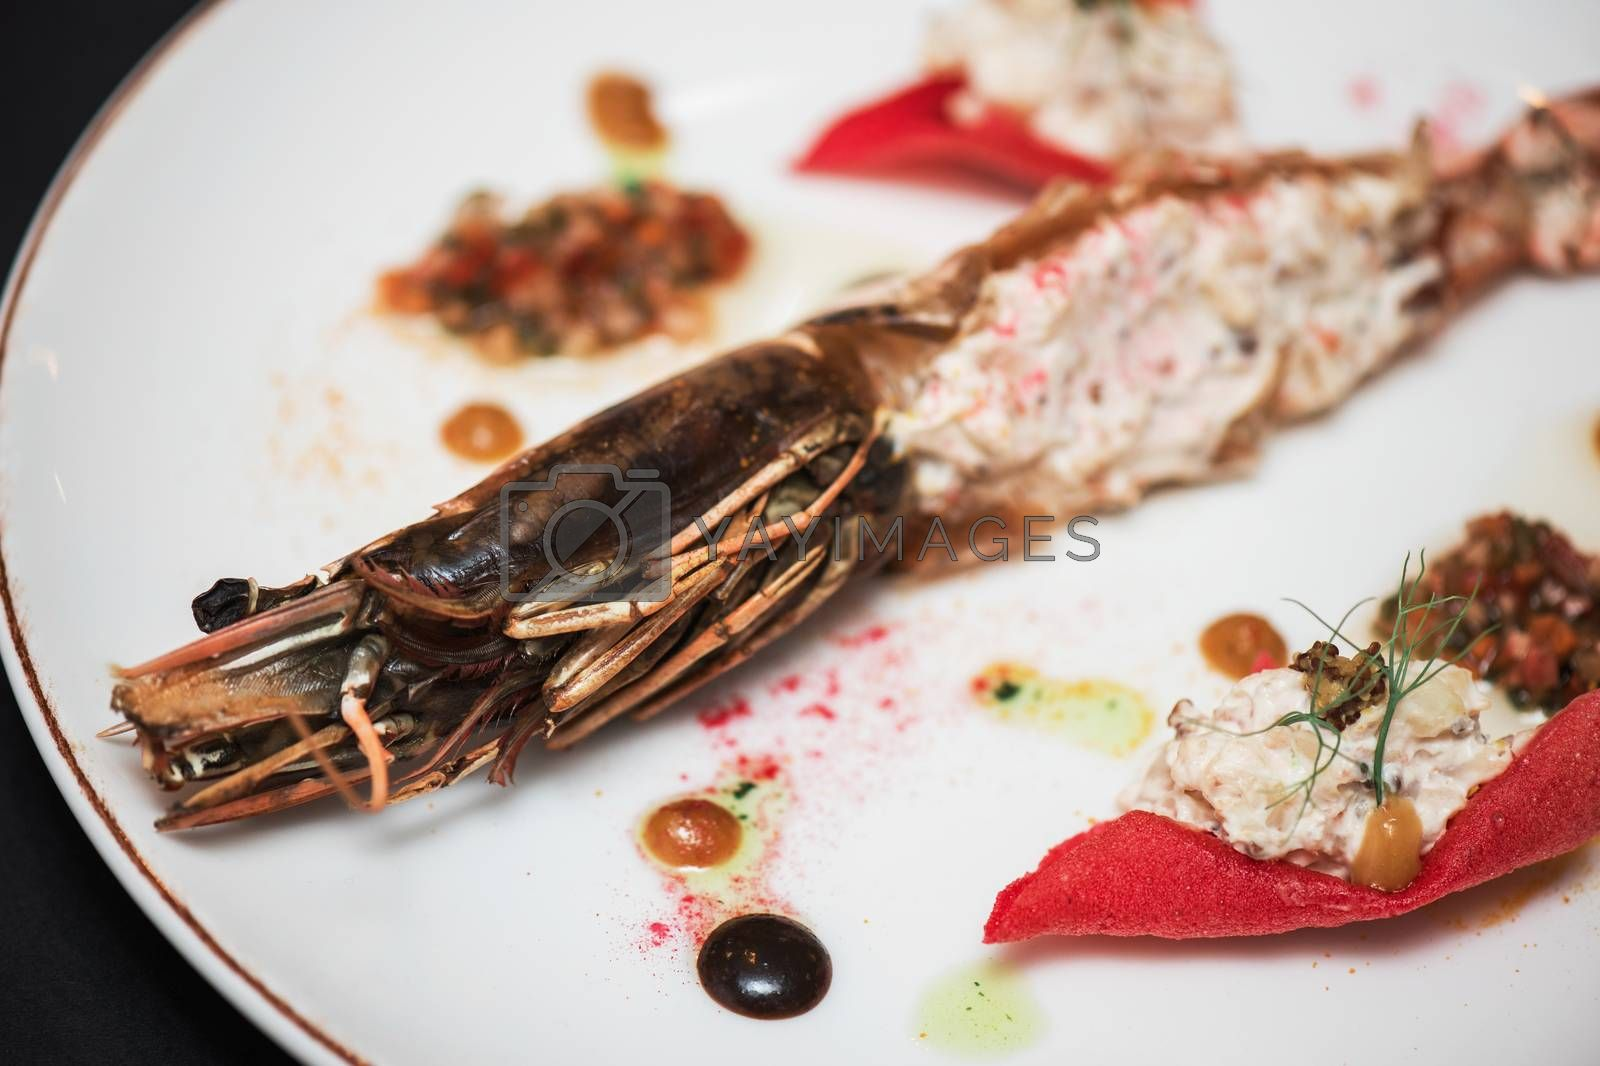 Cooked and stuffed crayfish on the table. Tasty restaurant dish